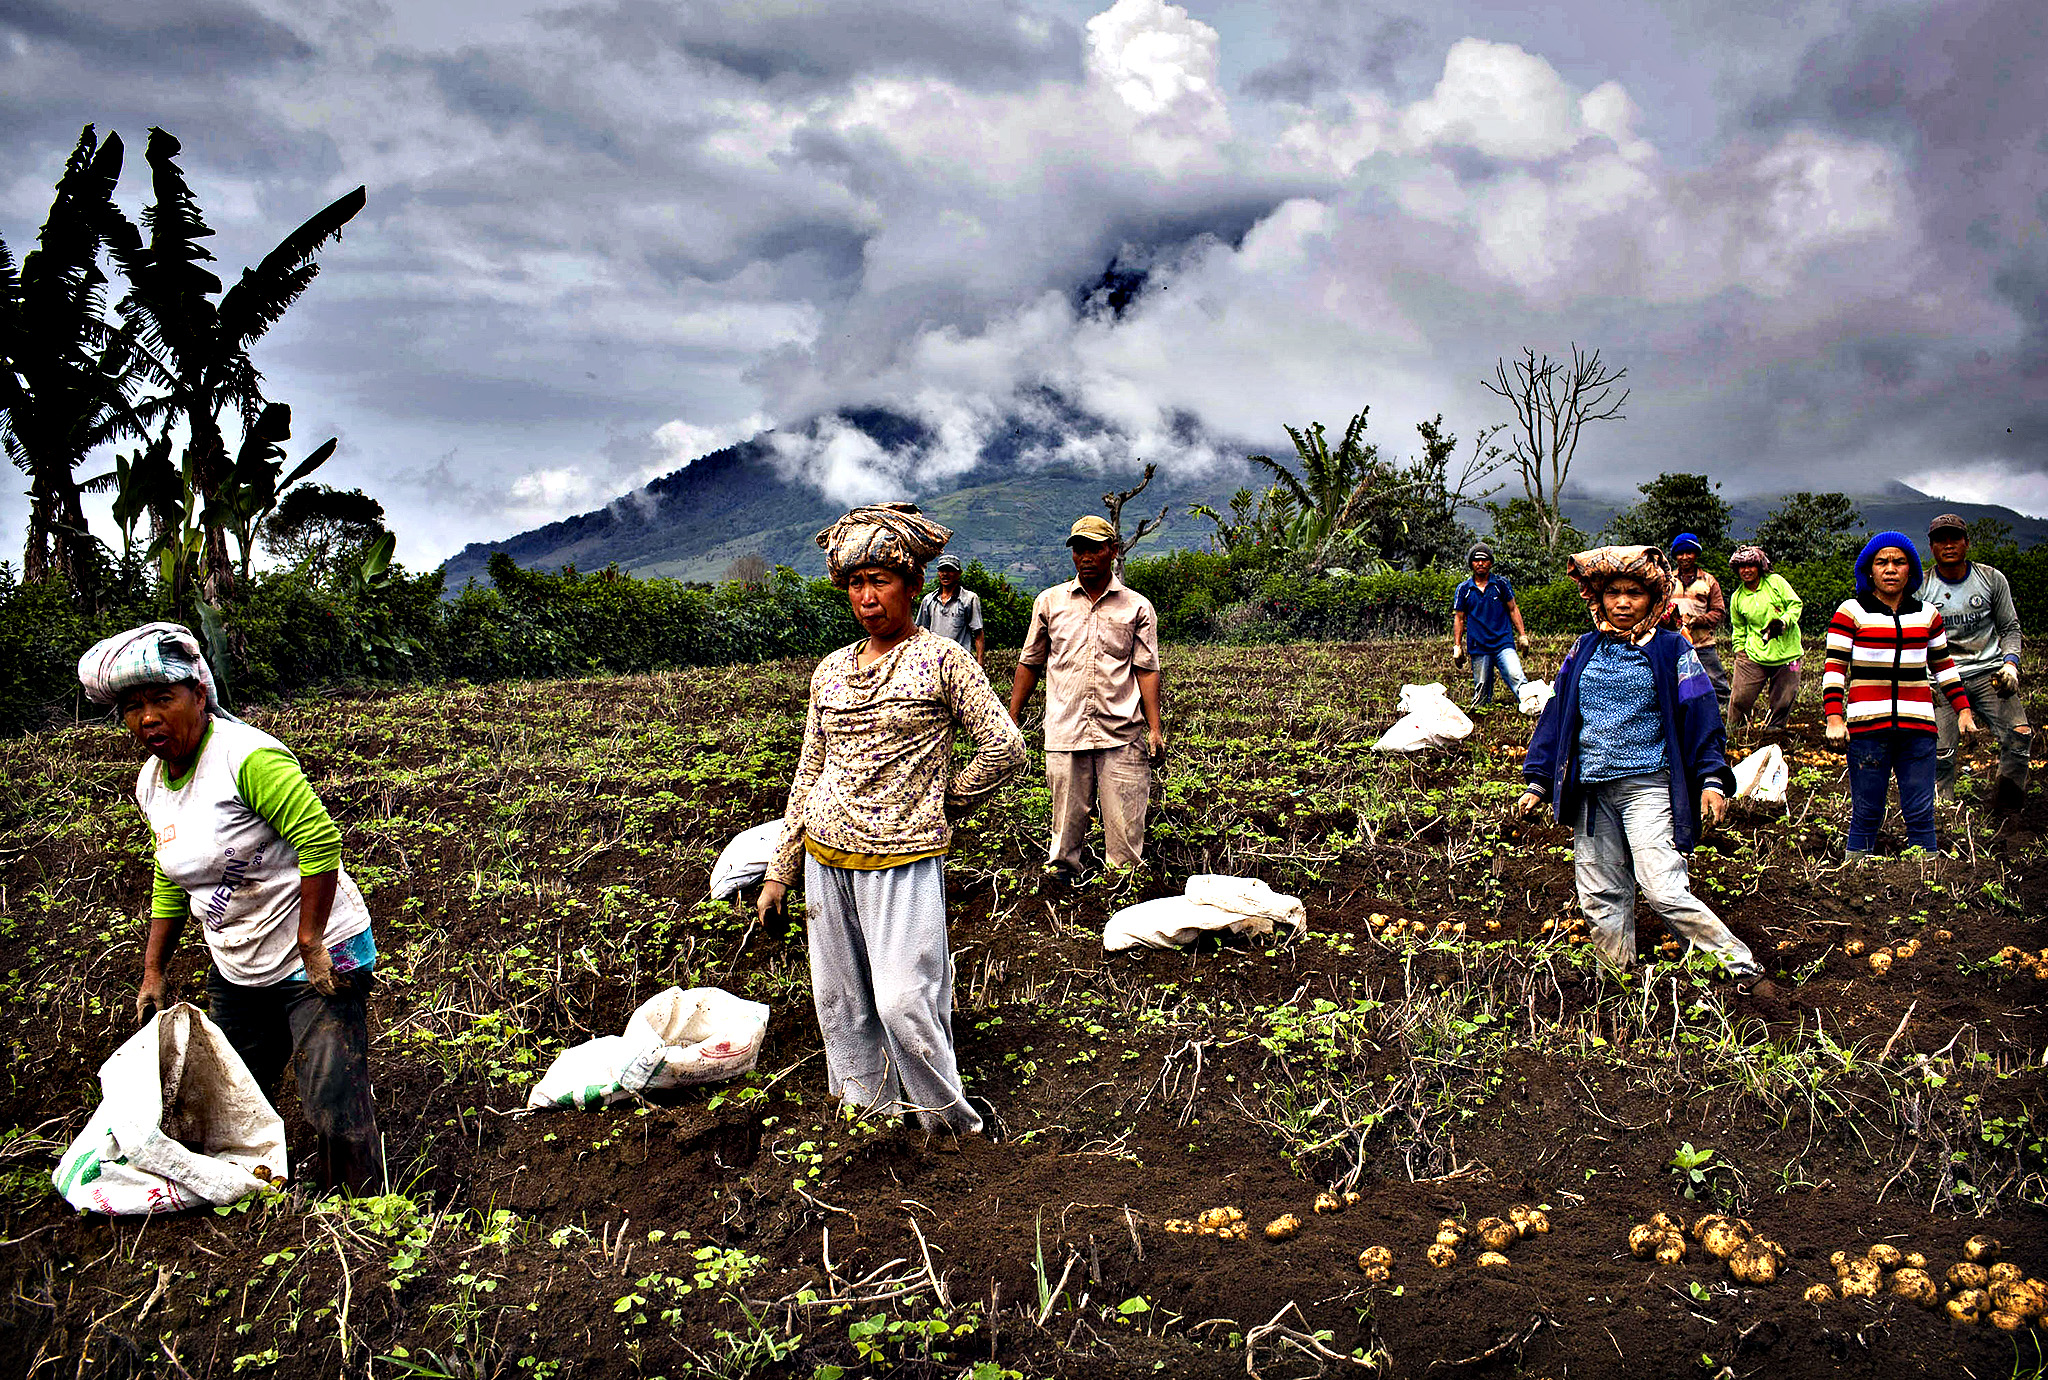 Villagers harvest potatoes at their field, located just less than four kilometers from mount Sinabung in Karo district on November 14, 2013 in Medan, Sumatra, Indonesia. Up to 4,300 residents have been evacuated from five villages in North Sumatra due to the volcanic eruptions of Mount Sinabung. The volcano has been erupting for several days, spewing ash and lava 2.5 miles into the sky.